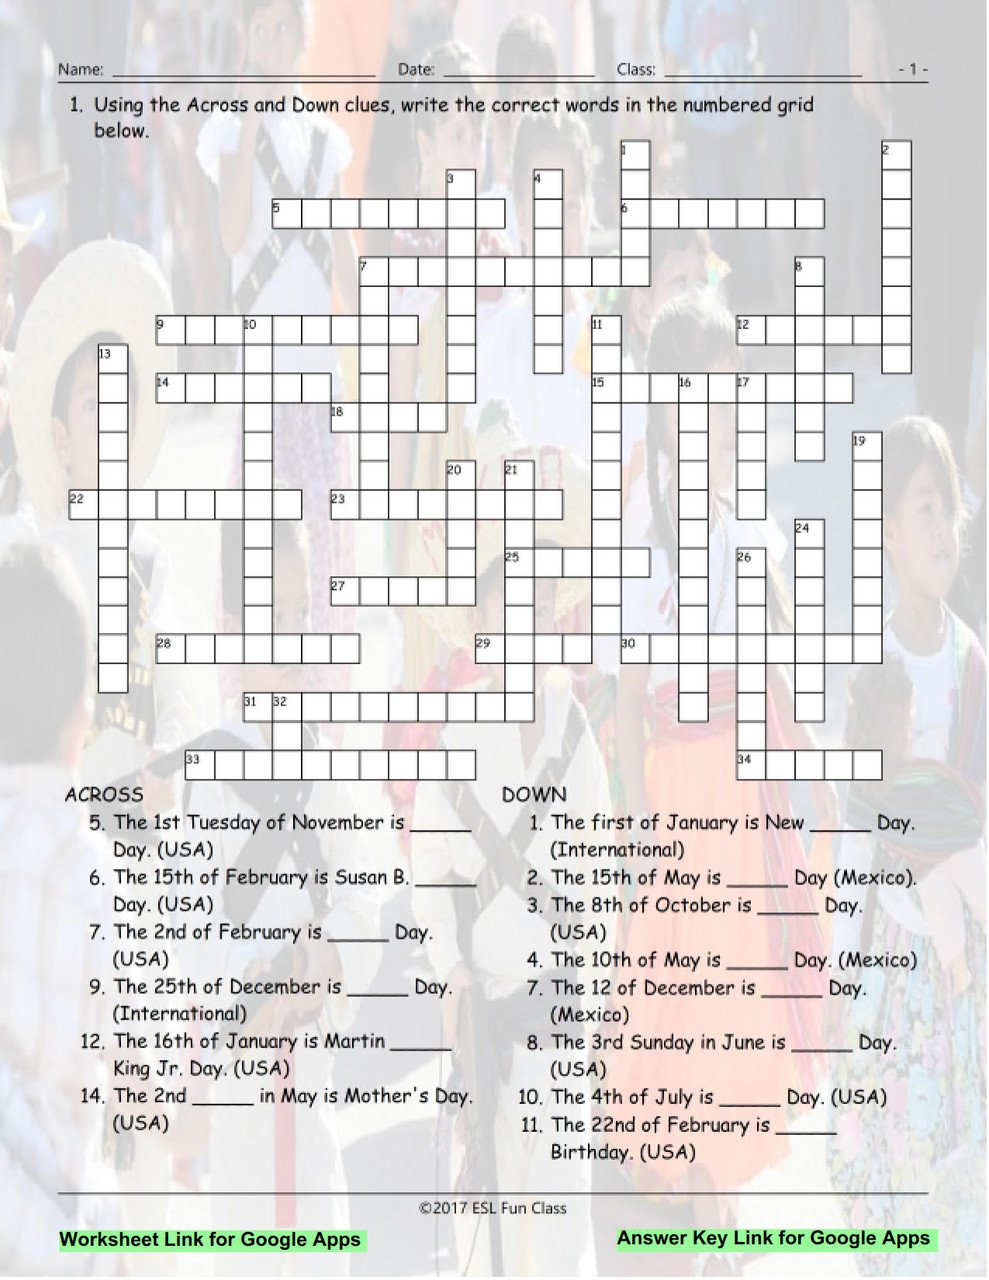 hight resolution of American vs Mexican Holidays Interactive Crossword Puzzle for Google Apps  LINKS - Amped Up Learning